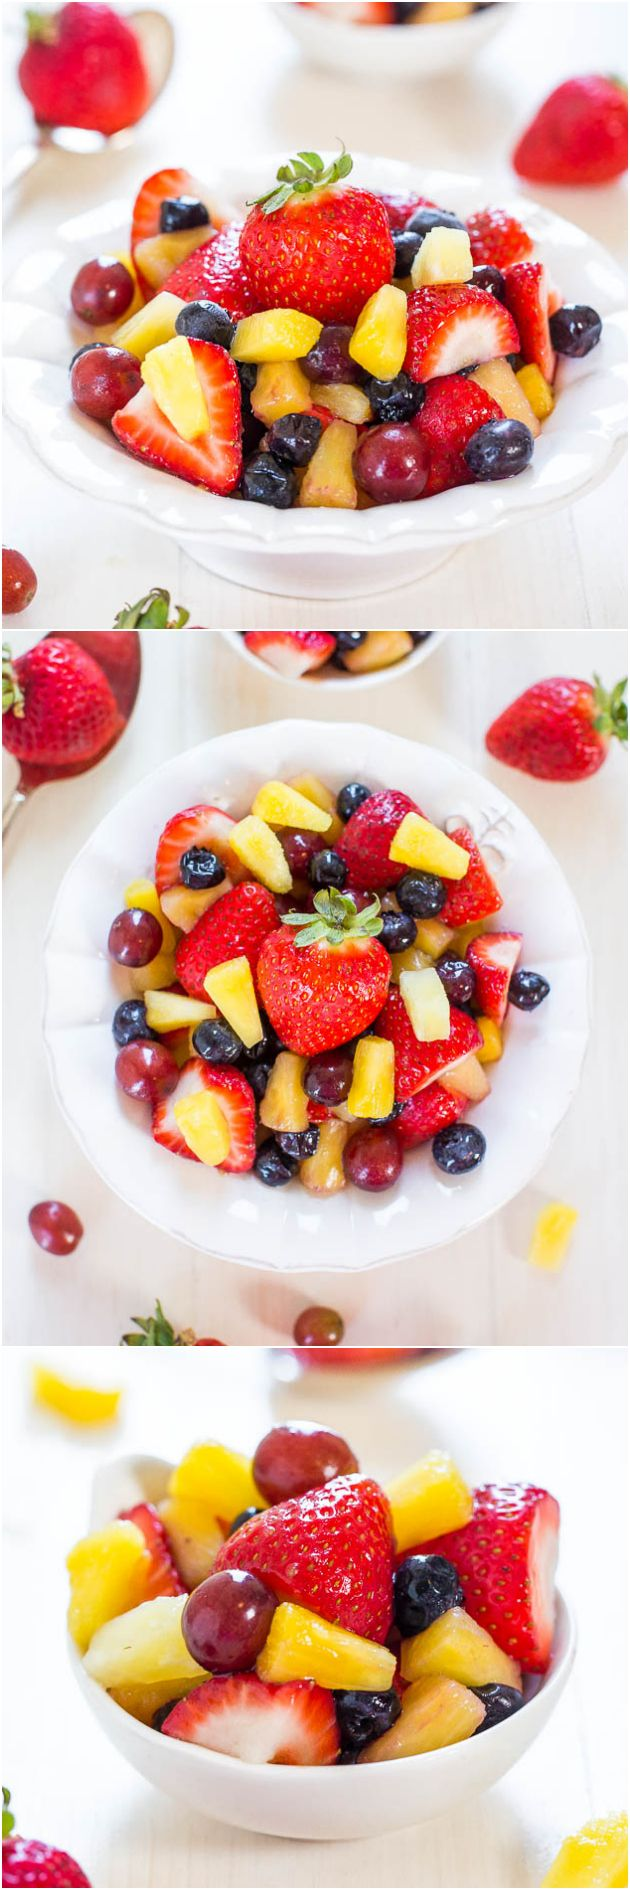 Vanilla Fruit Salad - The easiest fruit salad ever thanks to a secret ingredient! Make it for your next party and watch it disappear! @averie